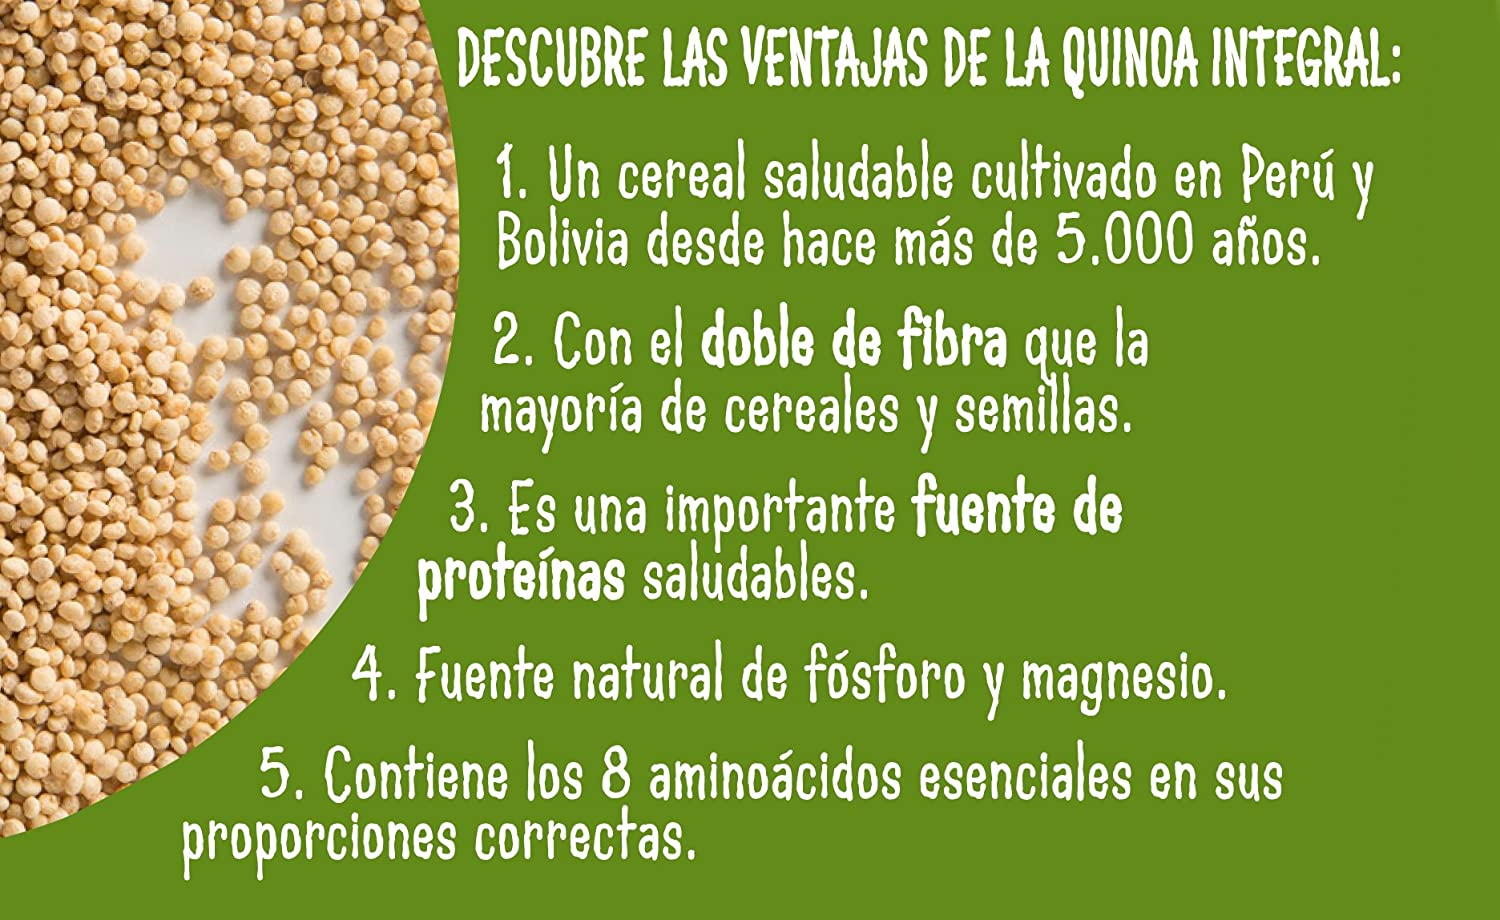 Brillante Quinoa Integral 125G X 2 - [Pack De 8] - Total 2 Kg: Amazon.es: Alimentación y bebidas